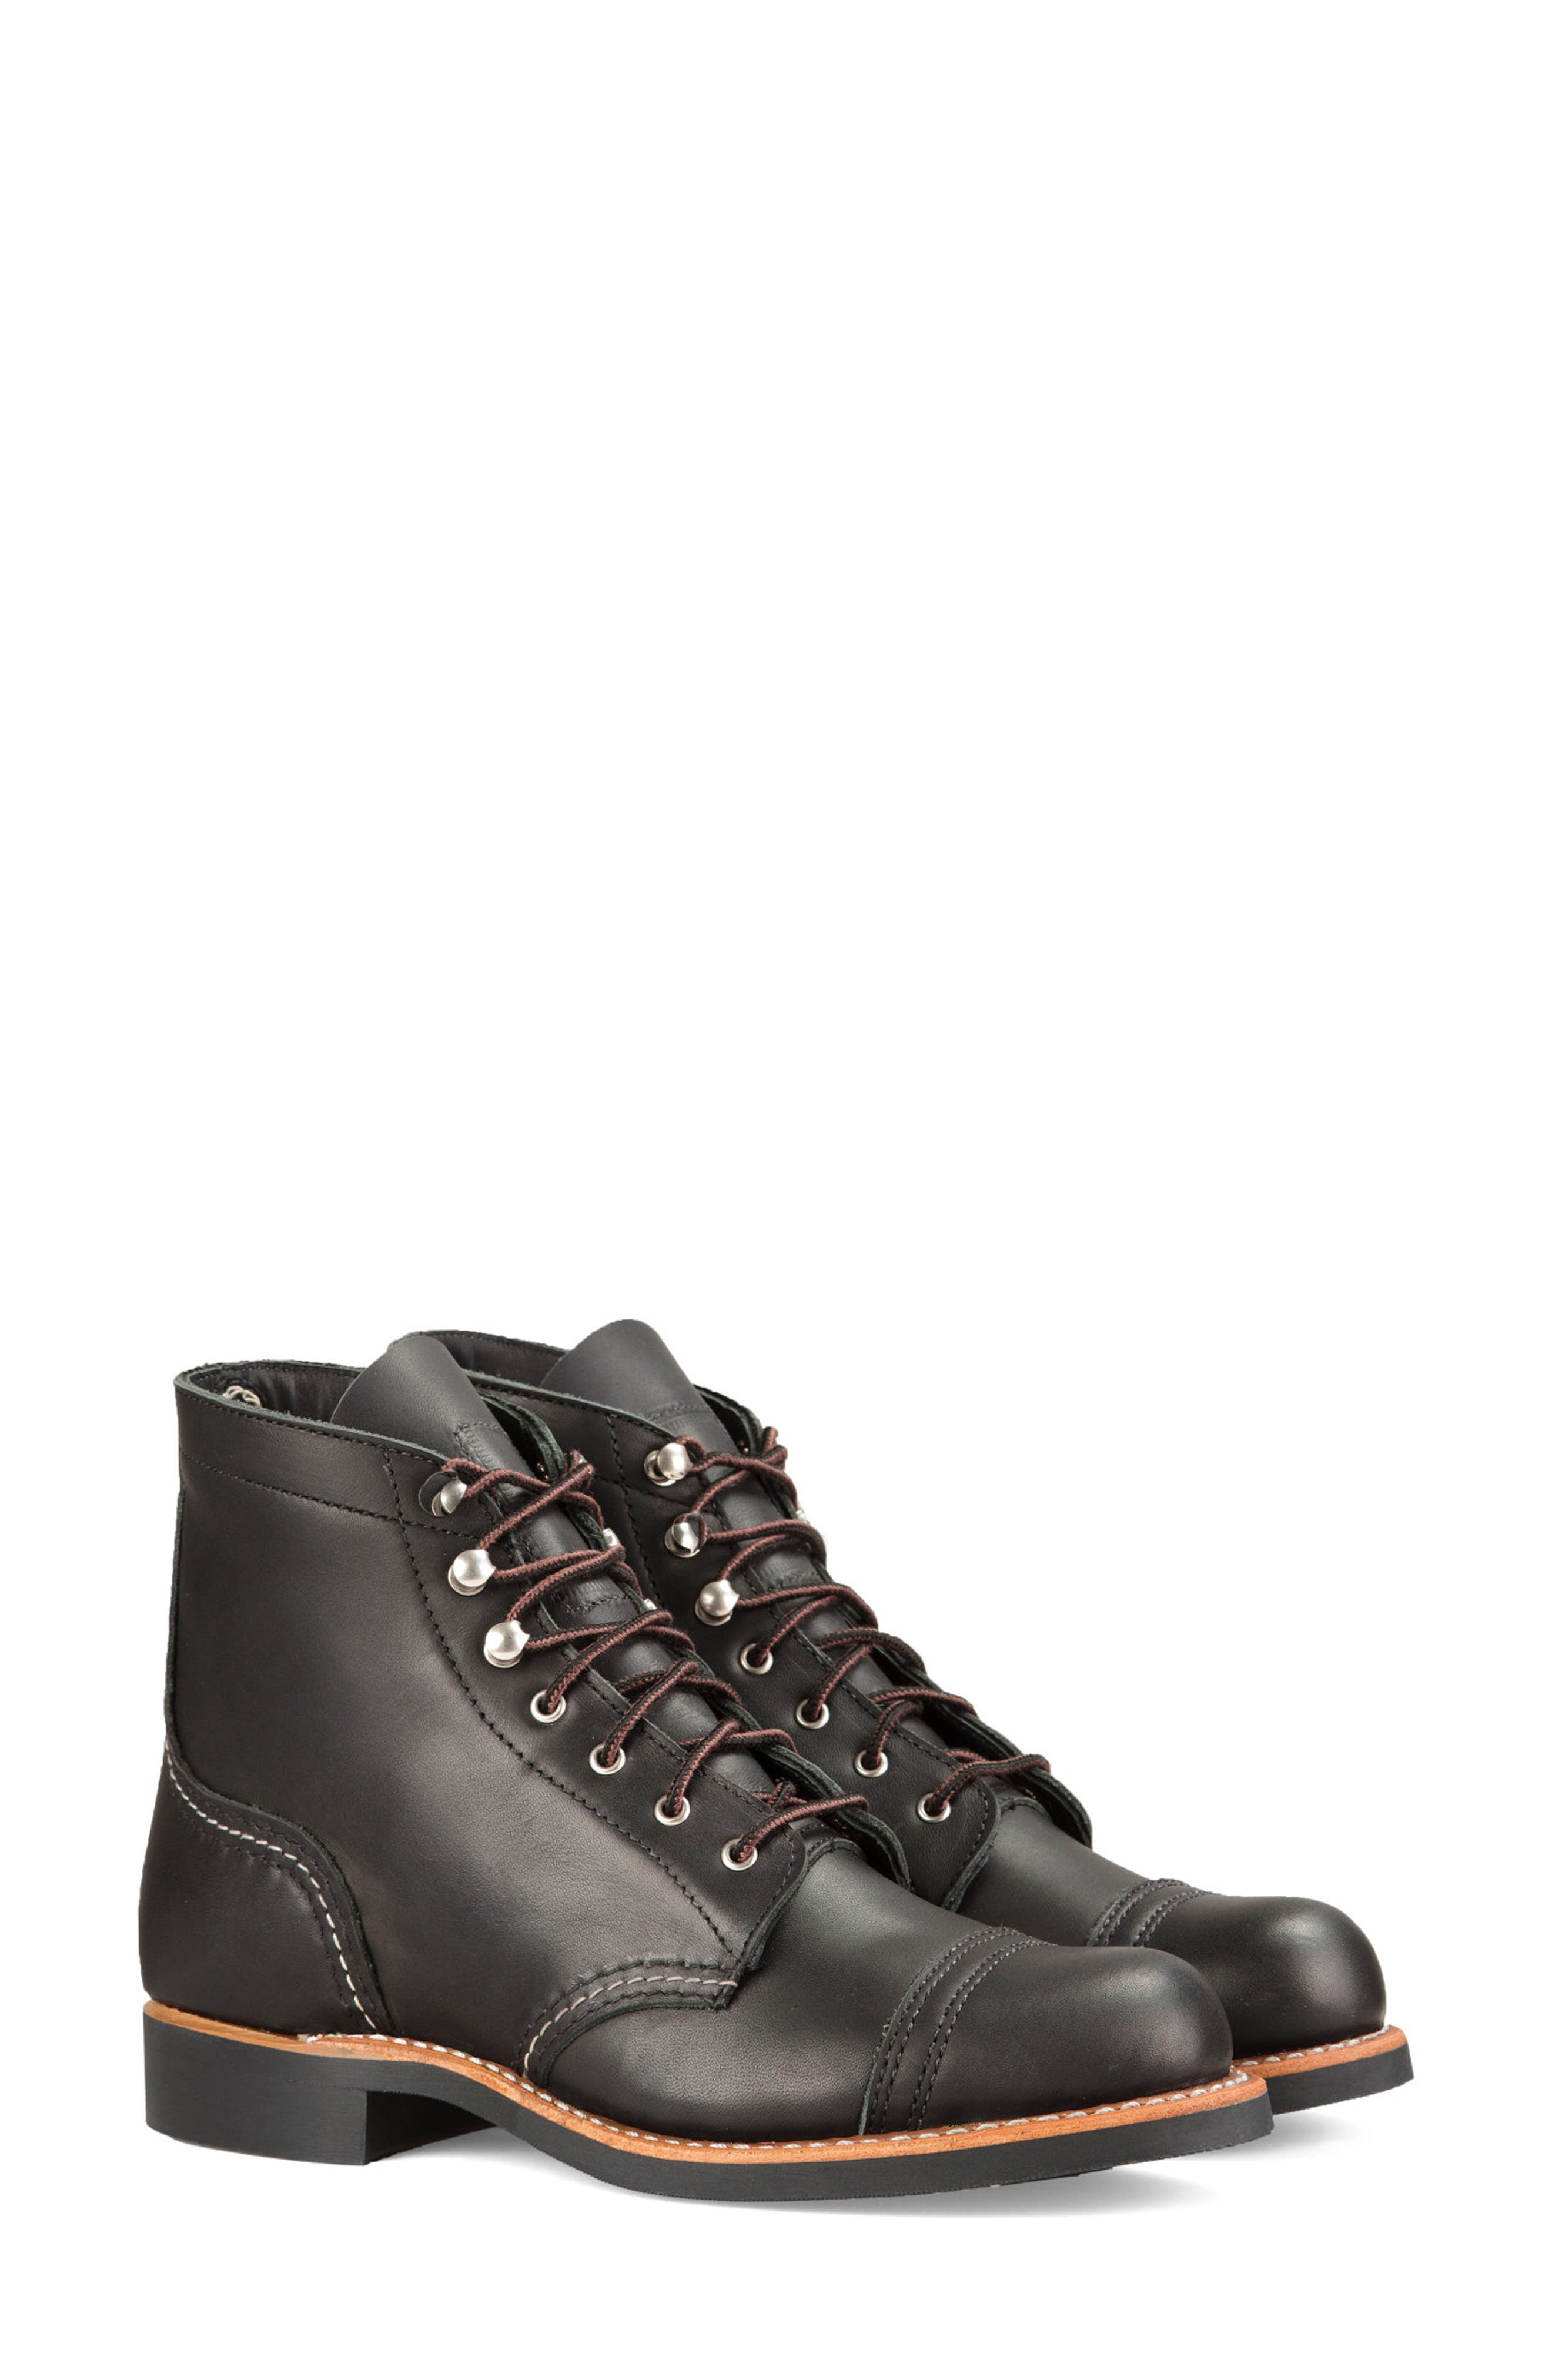 RED WING Iron Ranger Boot in Black Boundary Leather